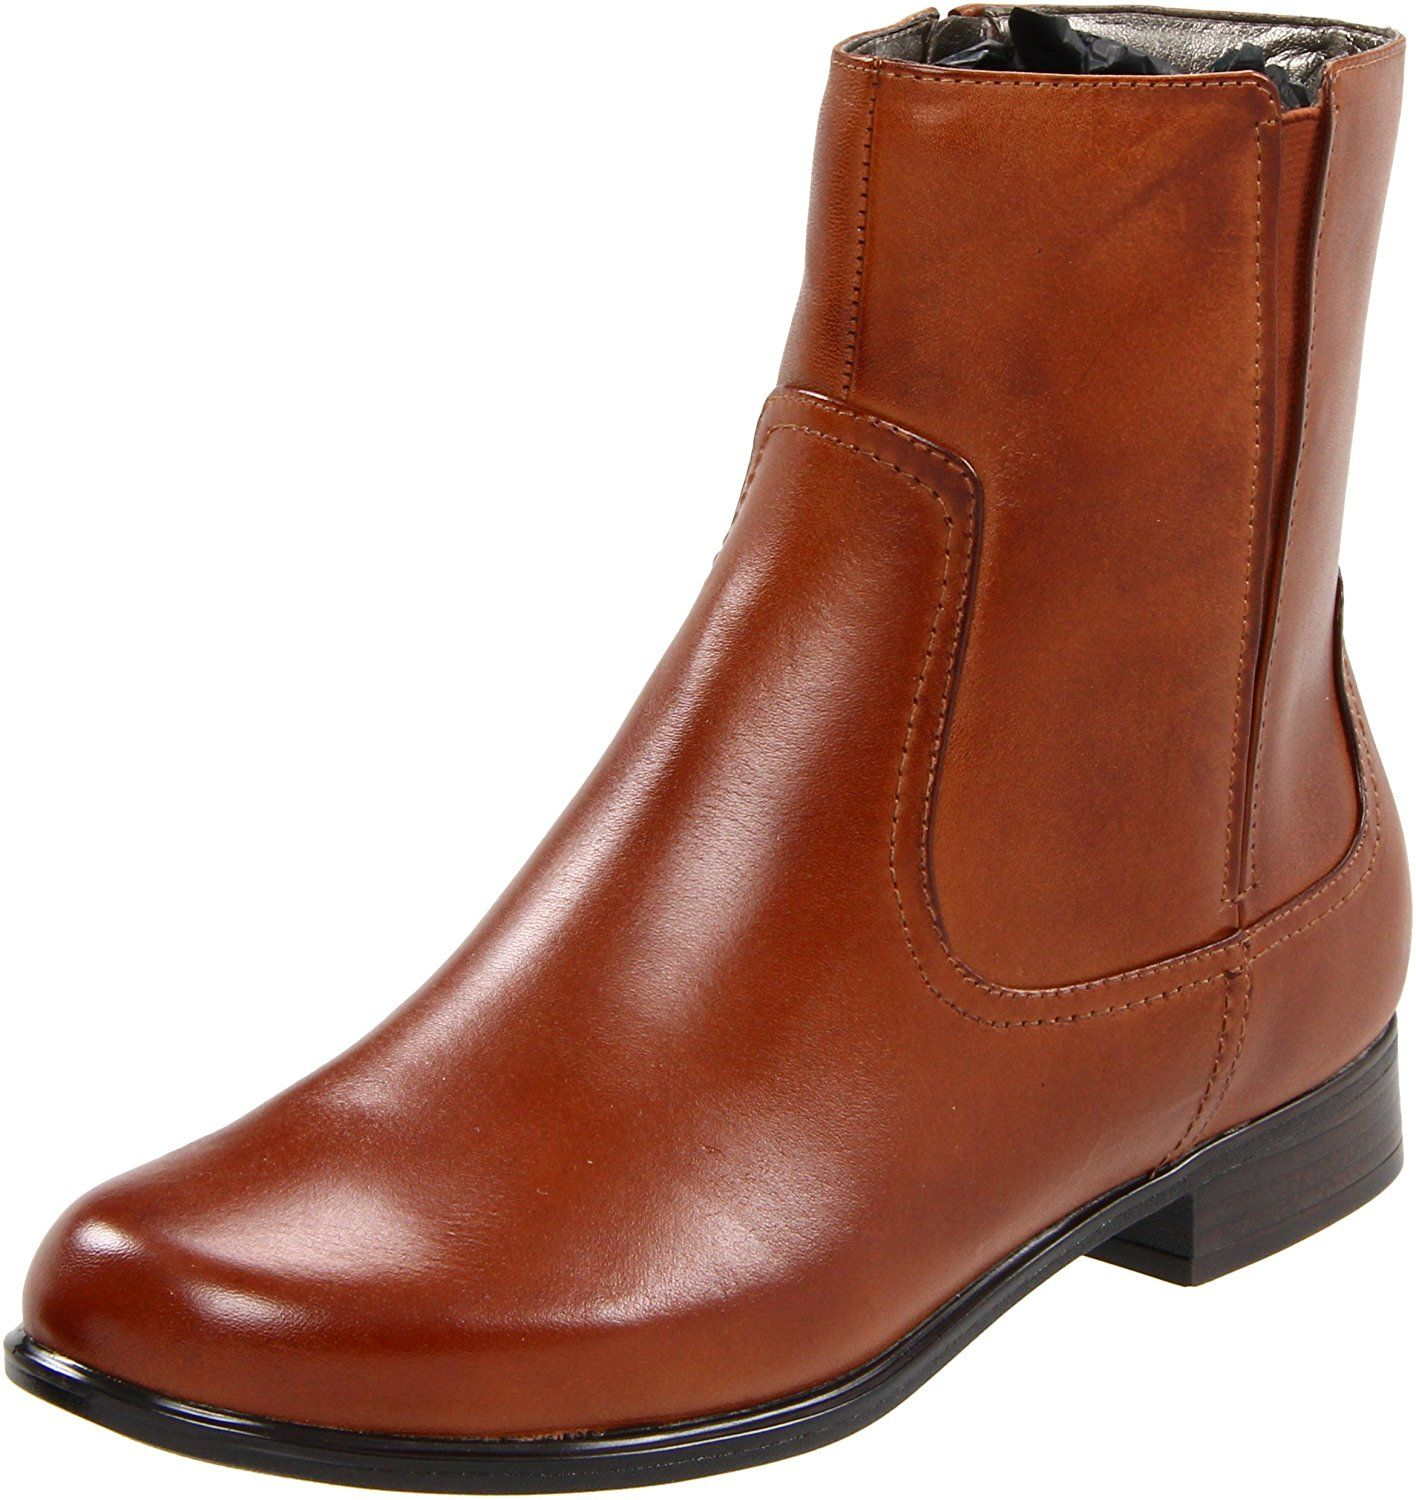 Hush Puppies Women S Filly Ankle Boot Amazing Product Just A Click Away Boots Shoes Boots Hush Puppies Women Boot Shoes Women